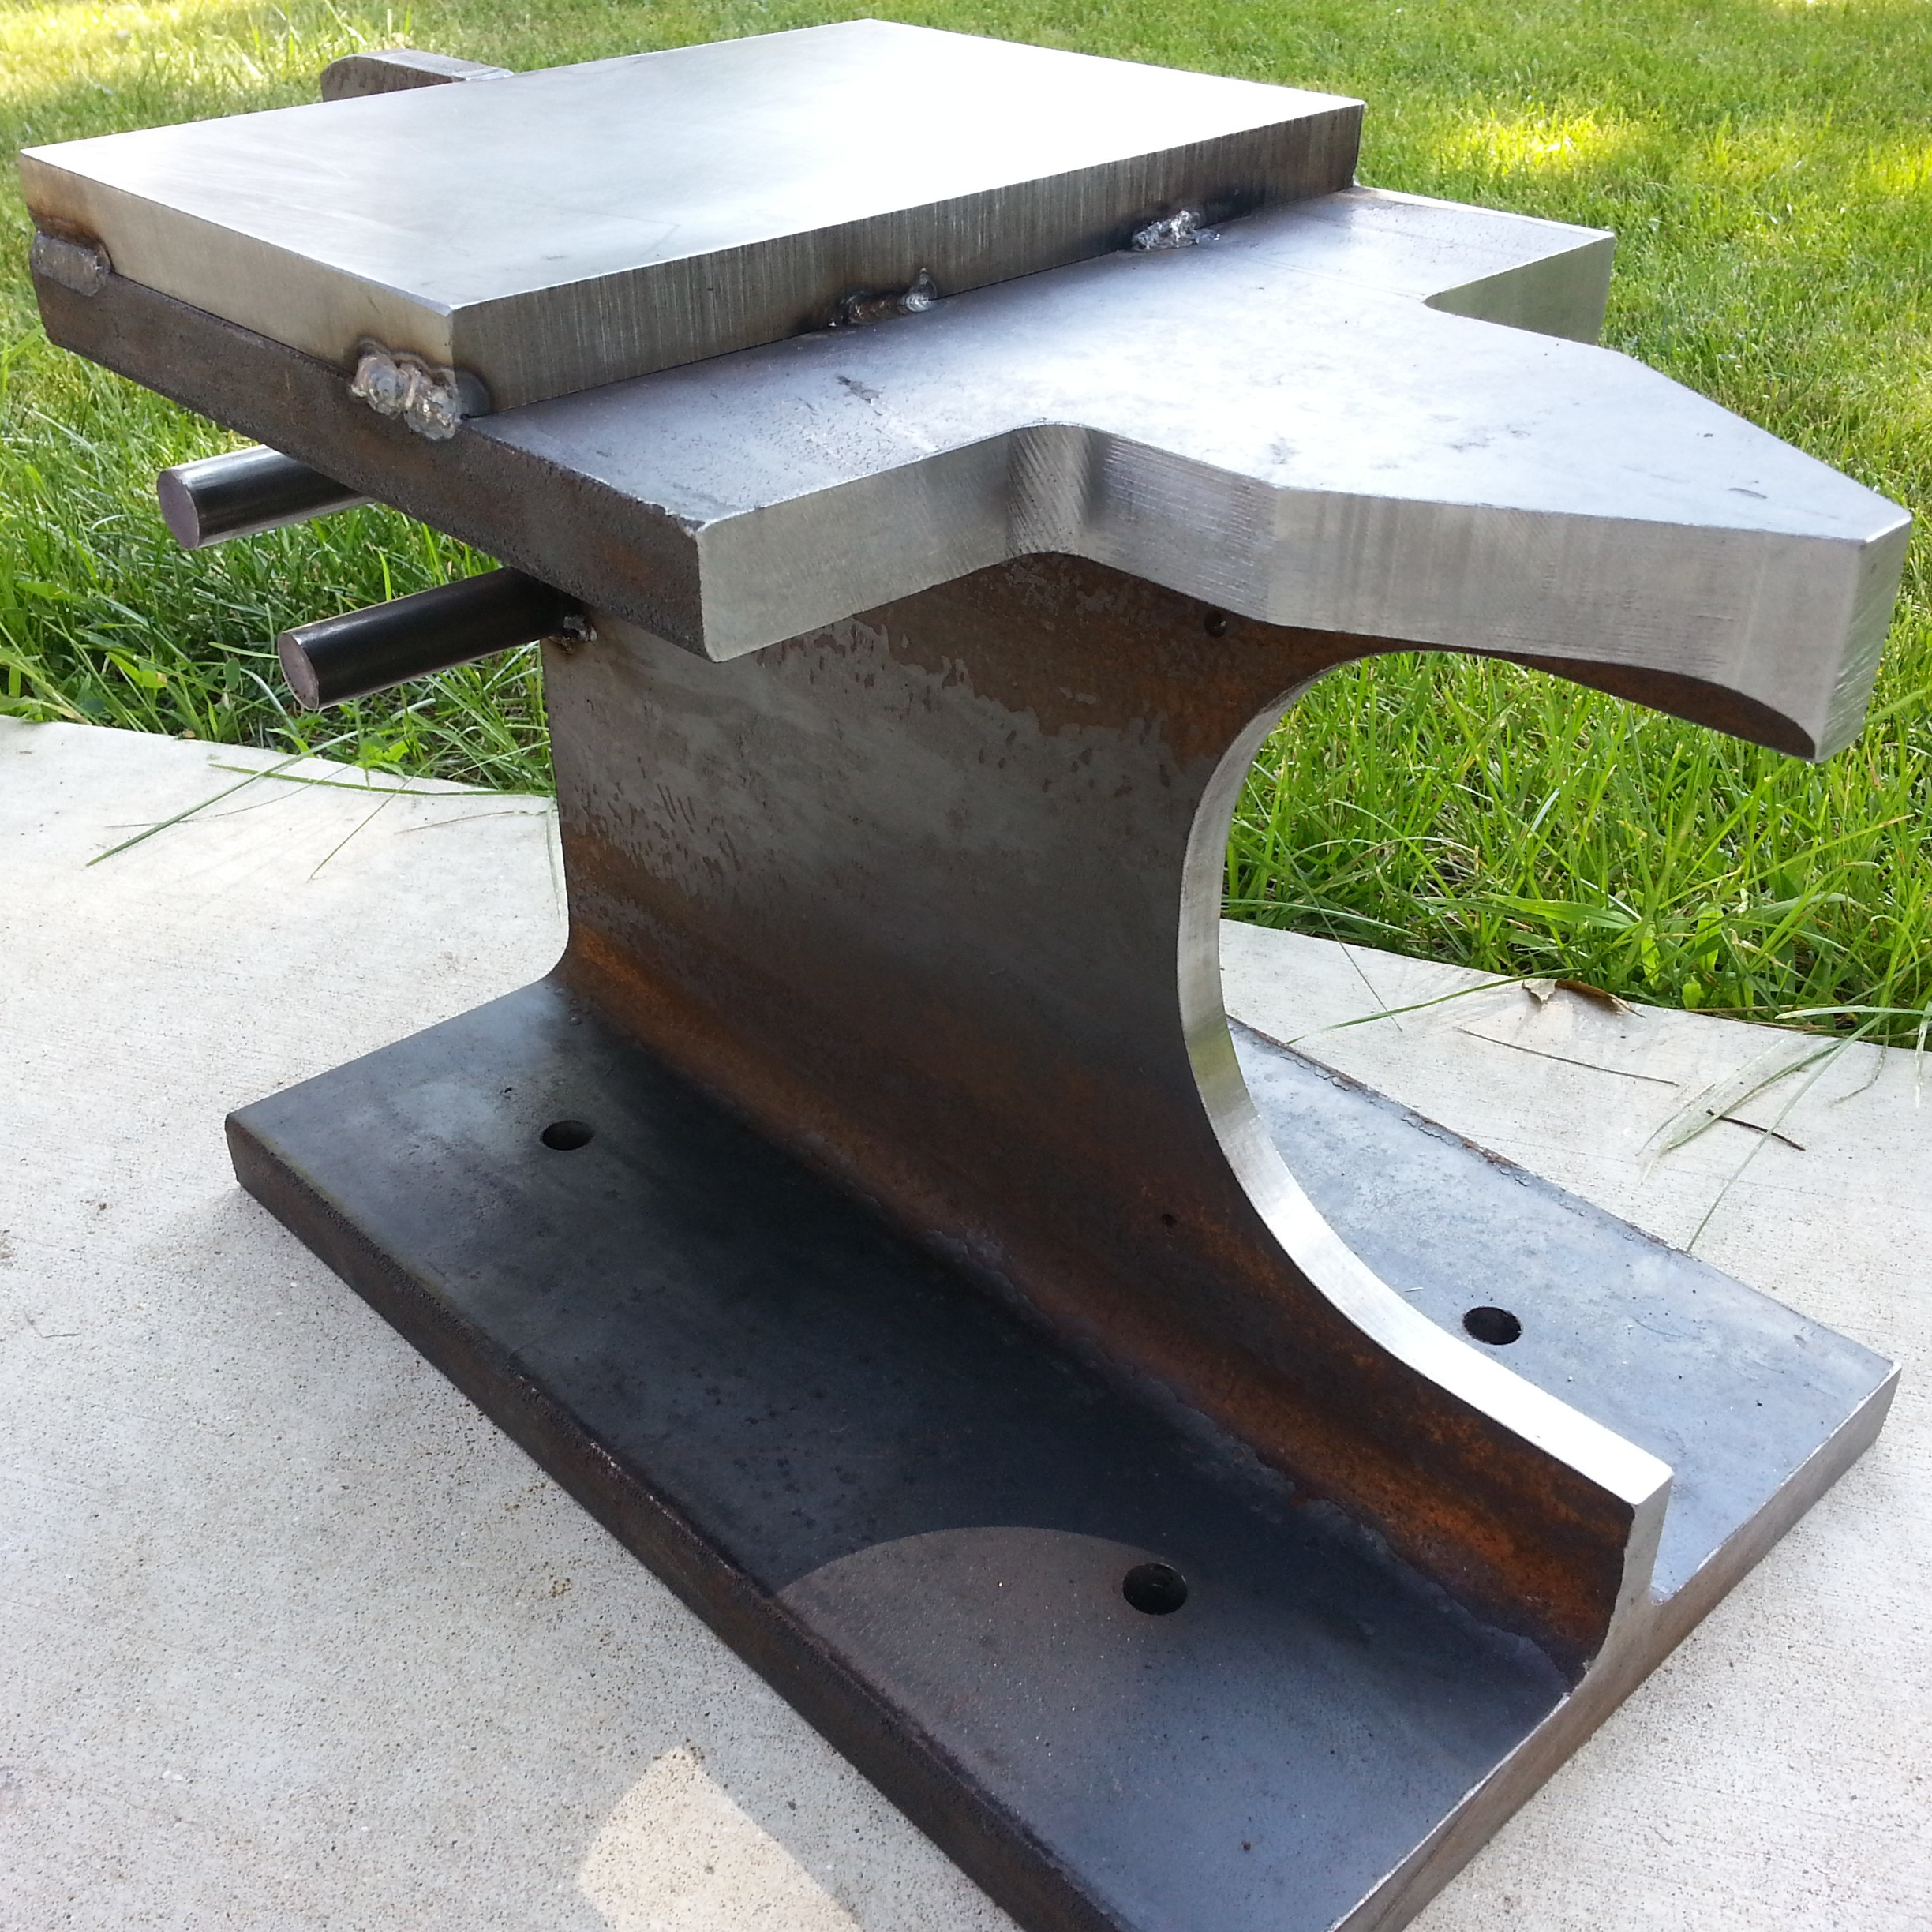 DIY, Homemade Blacksmithing Anvil - Virgil Aurand